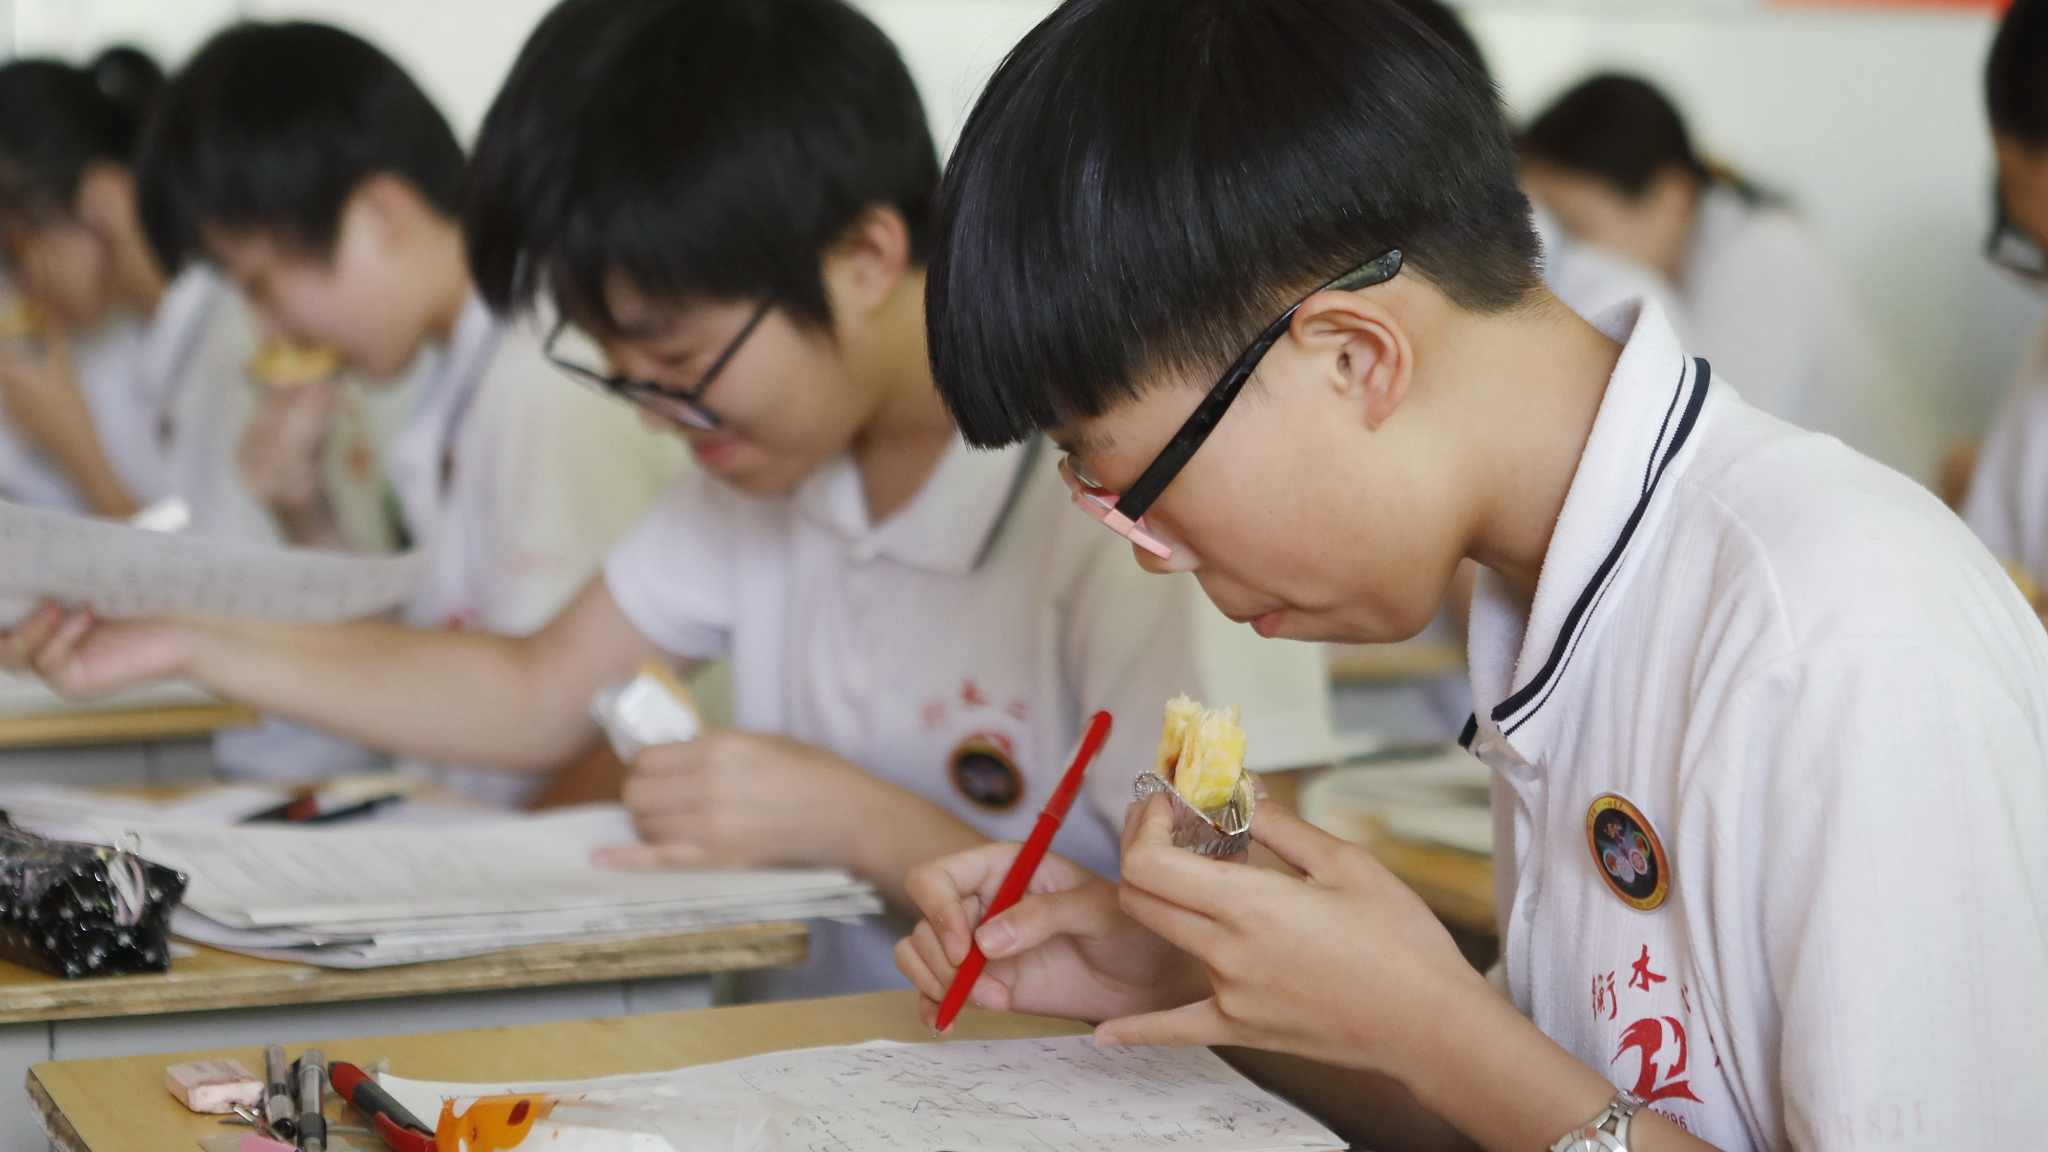 Generation Z in China is moving away from 'life-changing' exams